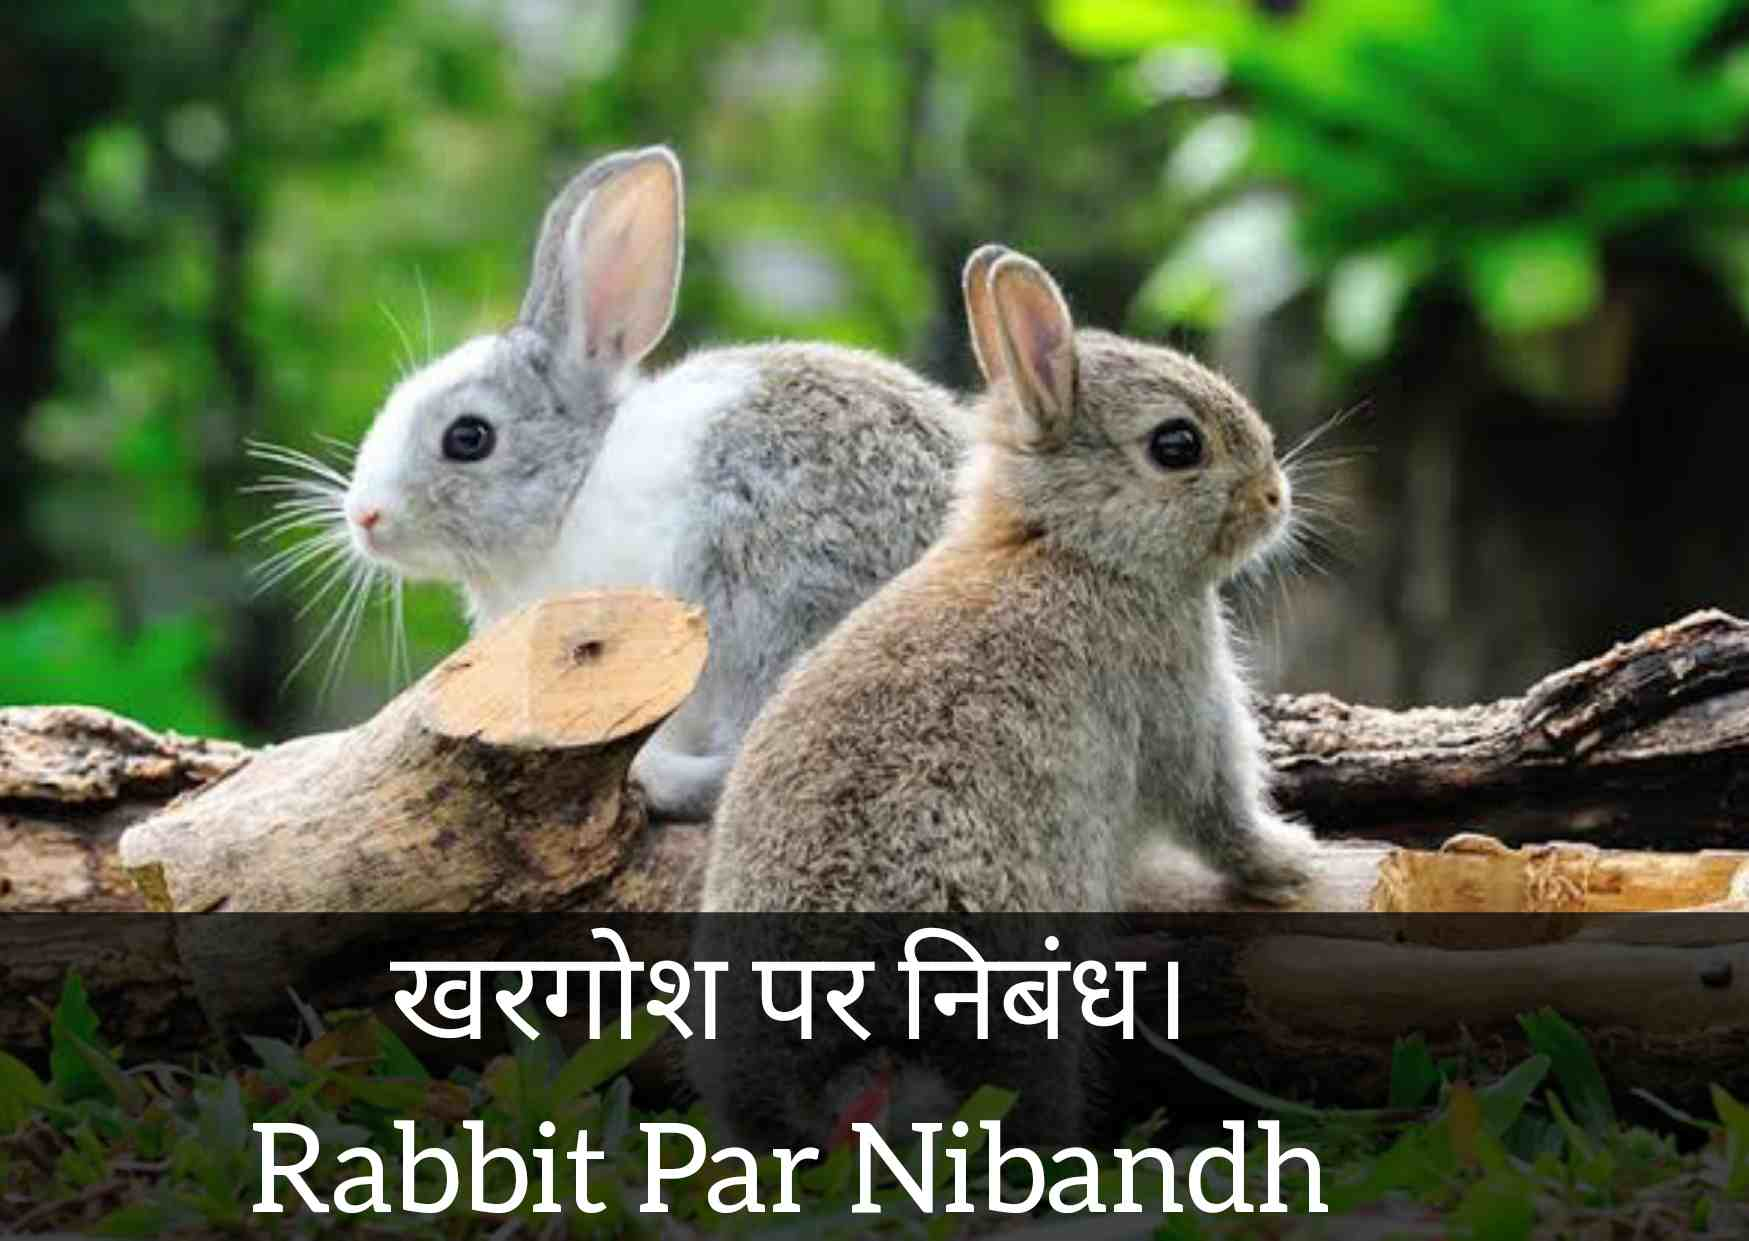 Essay About Rabbit in Hindi, Information About Rabbit in Hindi, Essay on Rabbit in Hindi